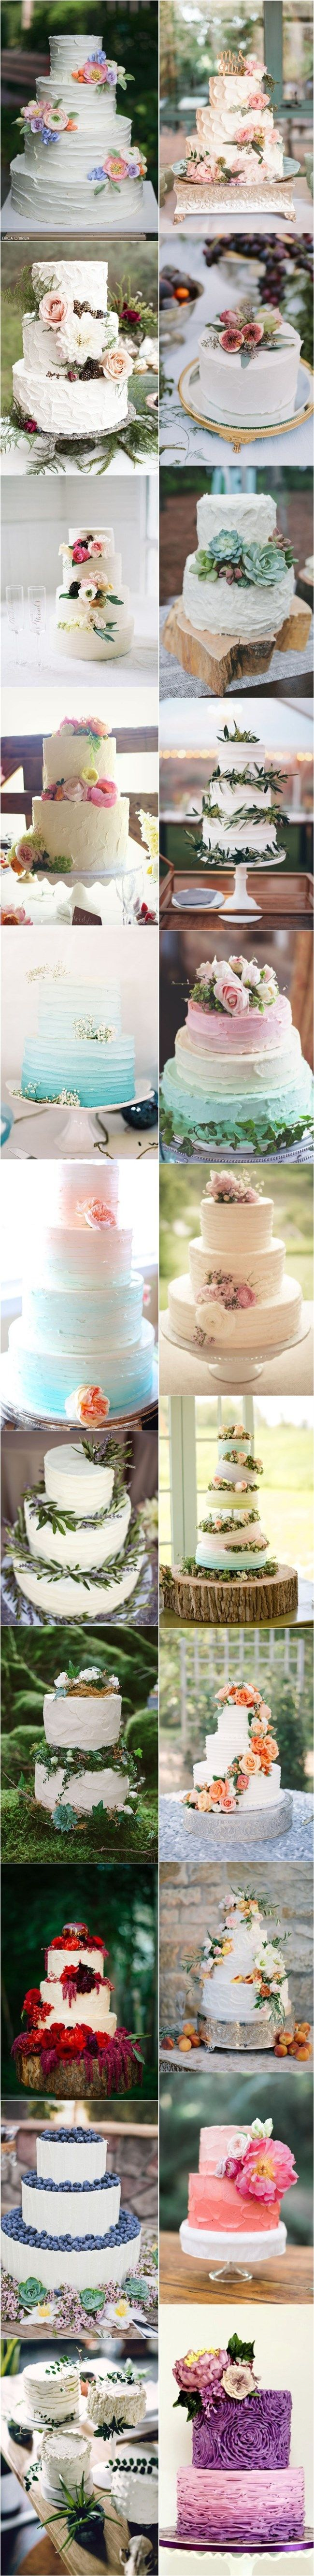 25 Buttercream Wedding Cakes We'd (Almost) Kill For (with Tutorial) http://greatislamicquotes.com/